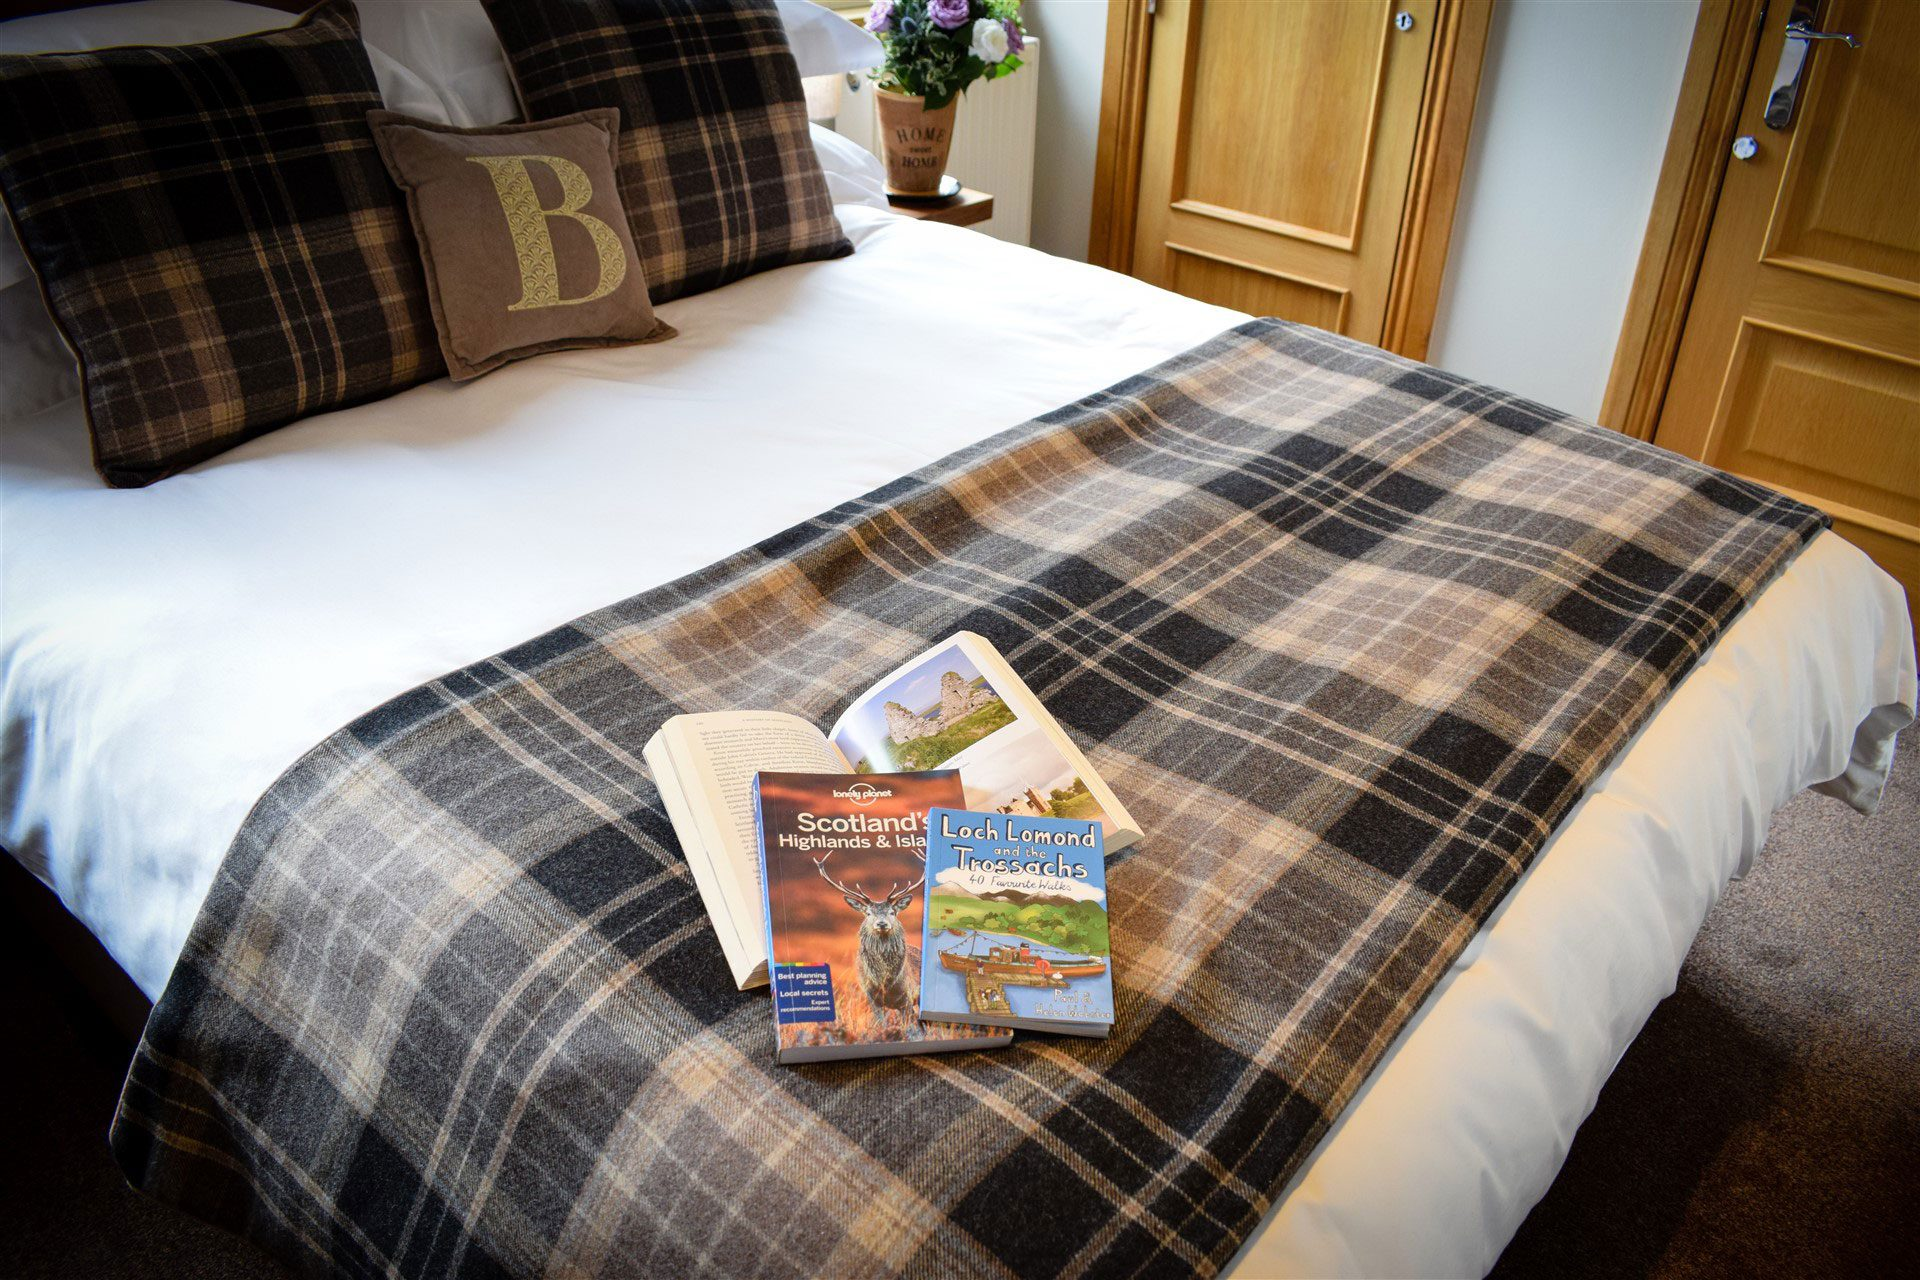 Relax at Benoch Luxury Self-catering and plan where you're going to explore around Loch Lomond